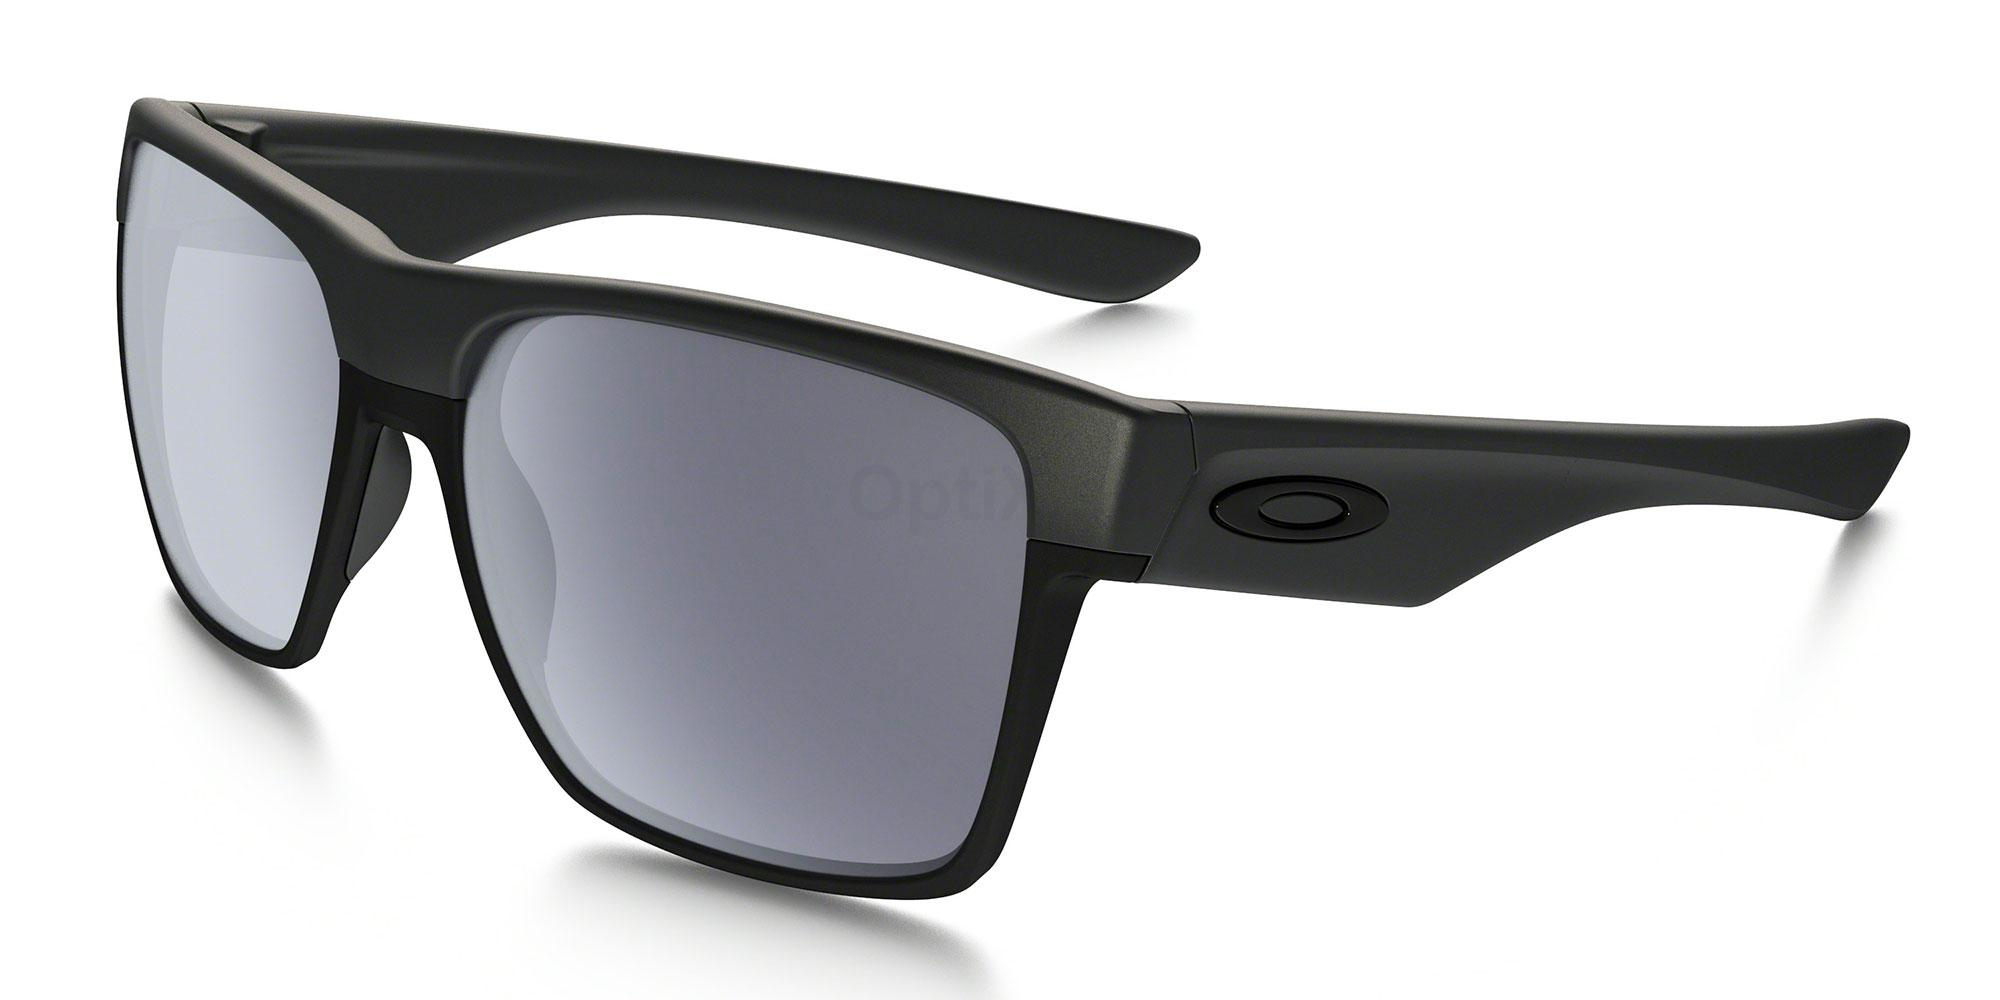 935003 OO9350 TWOFACE XL Sunglasses, Oakley